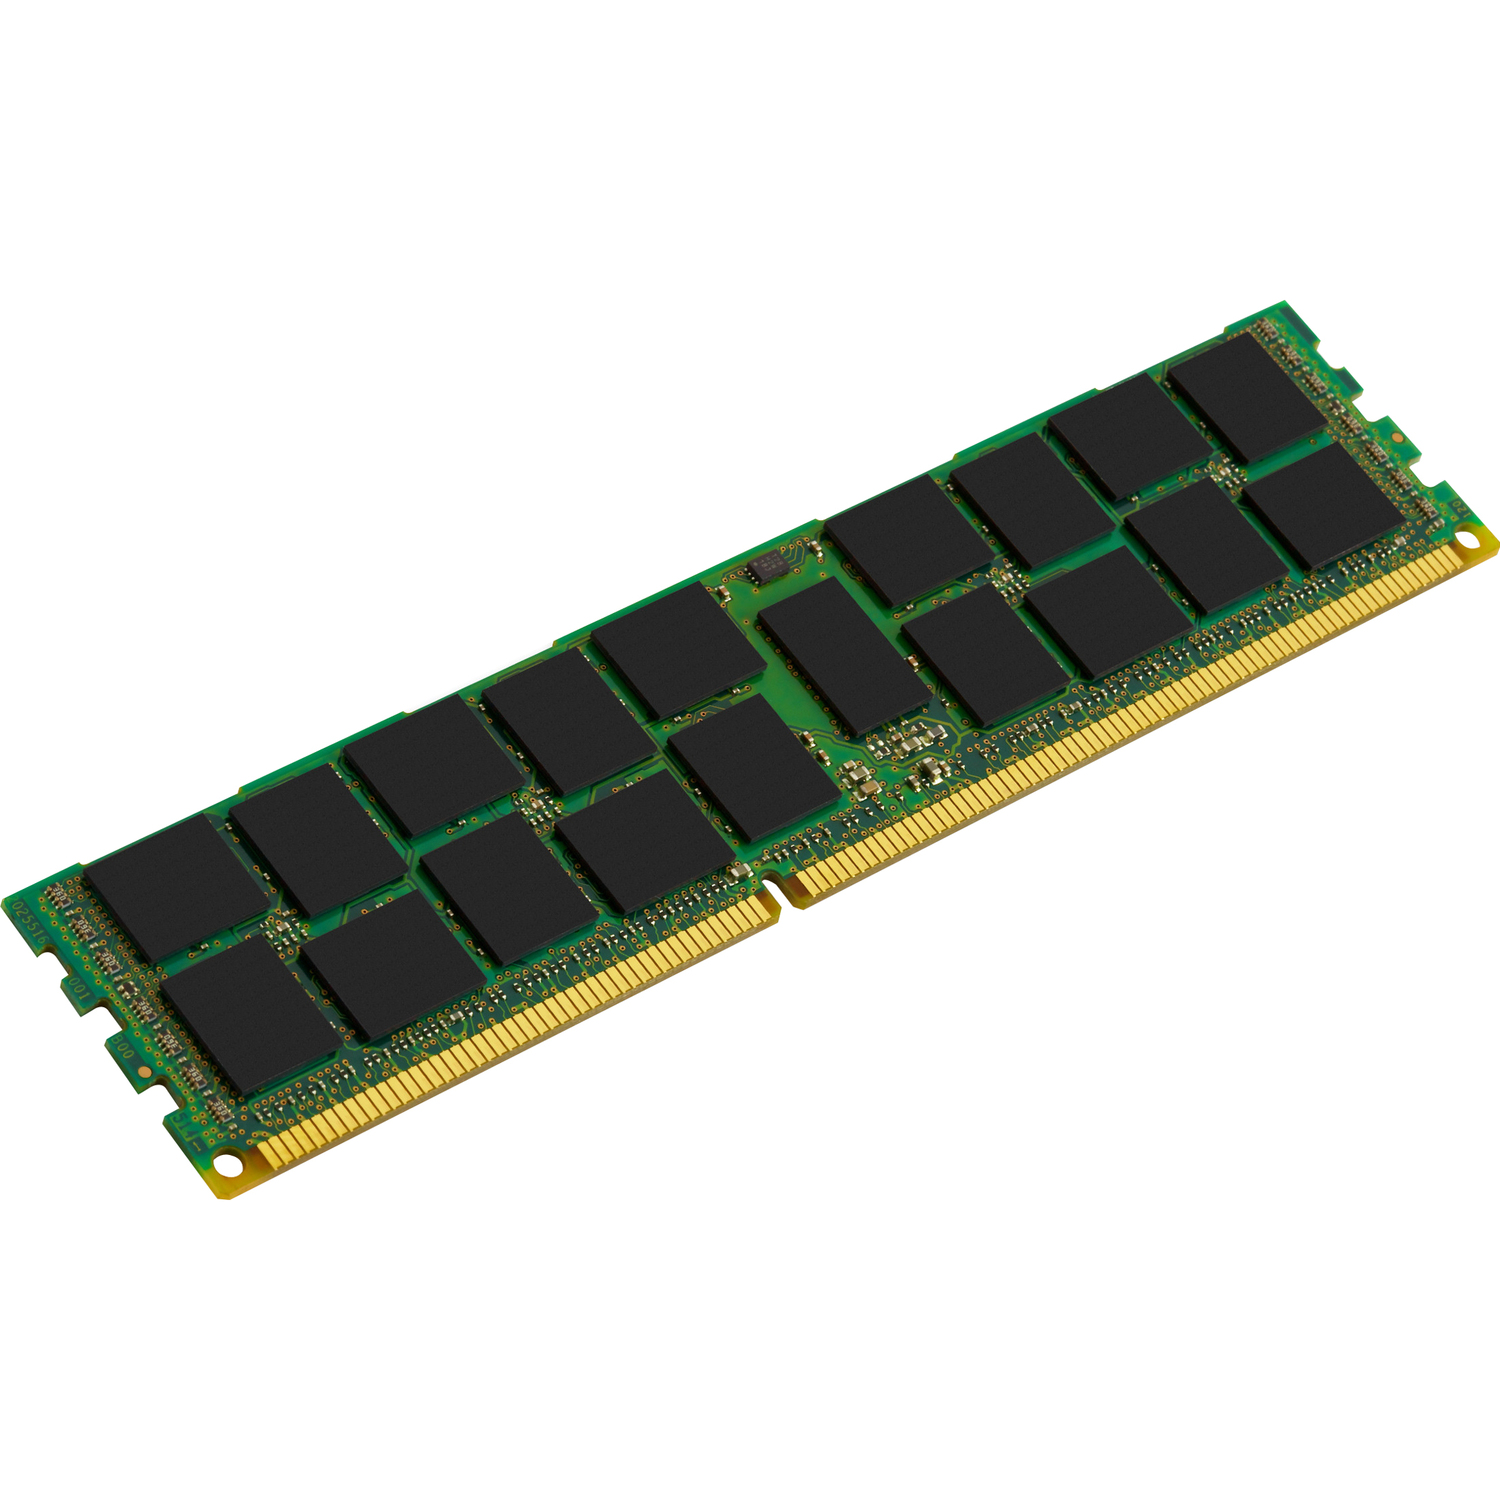 Kingston RAM Module - 8 GB 1 x 8 GB - DDR3 SDRAM - 1600 MHz DDR3-1600/PC3-12800 - ECC - Registered